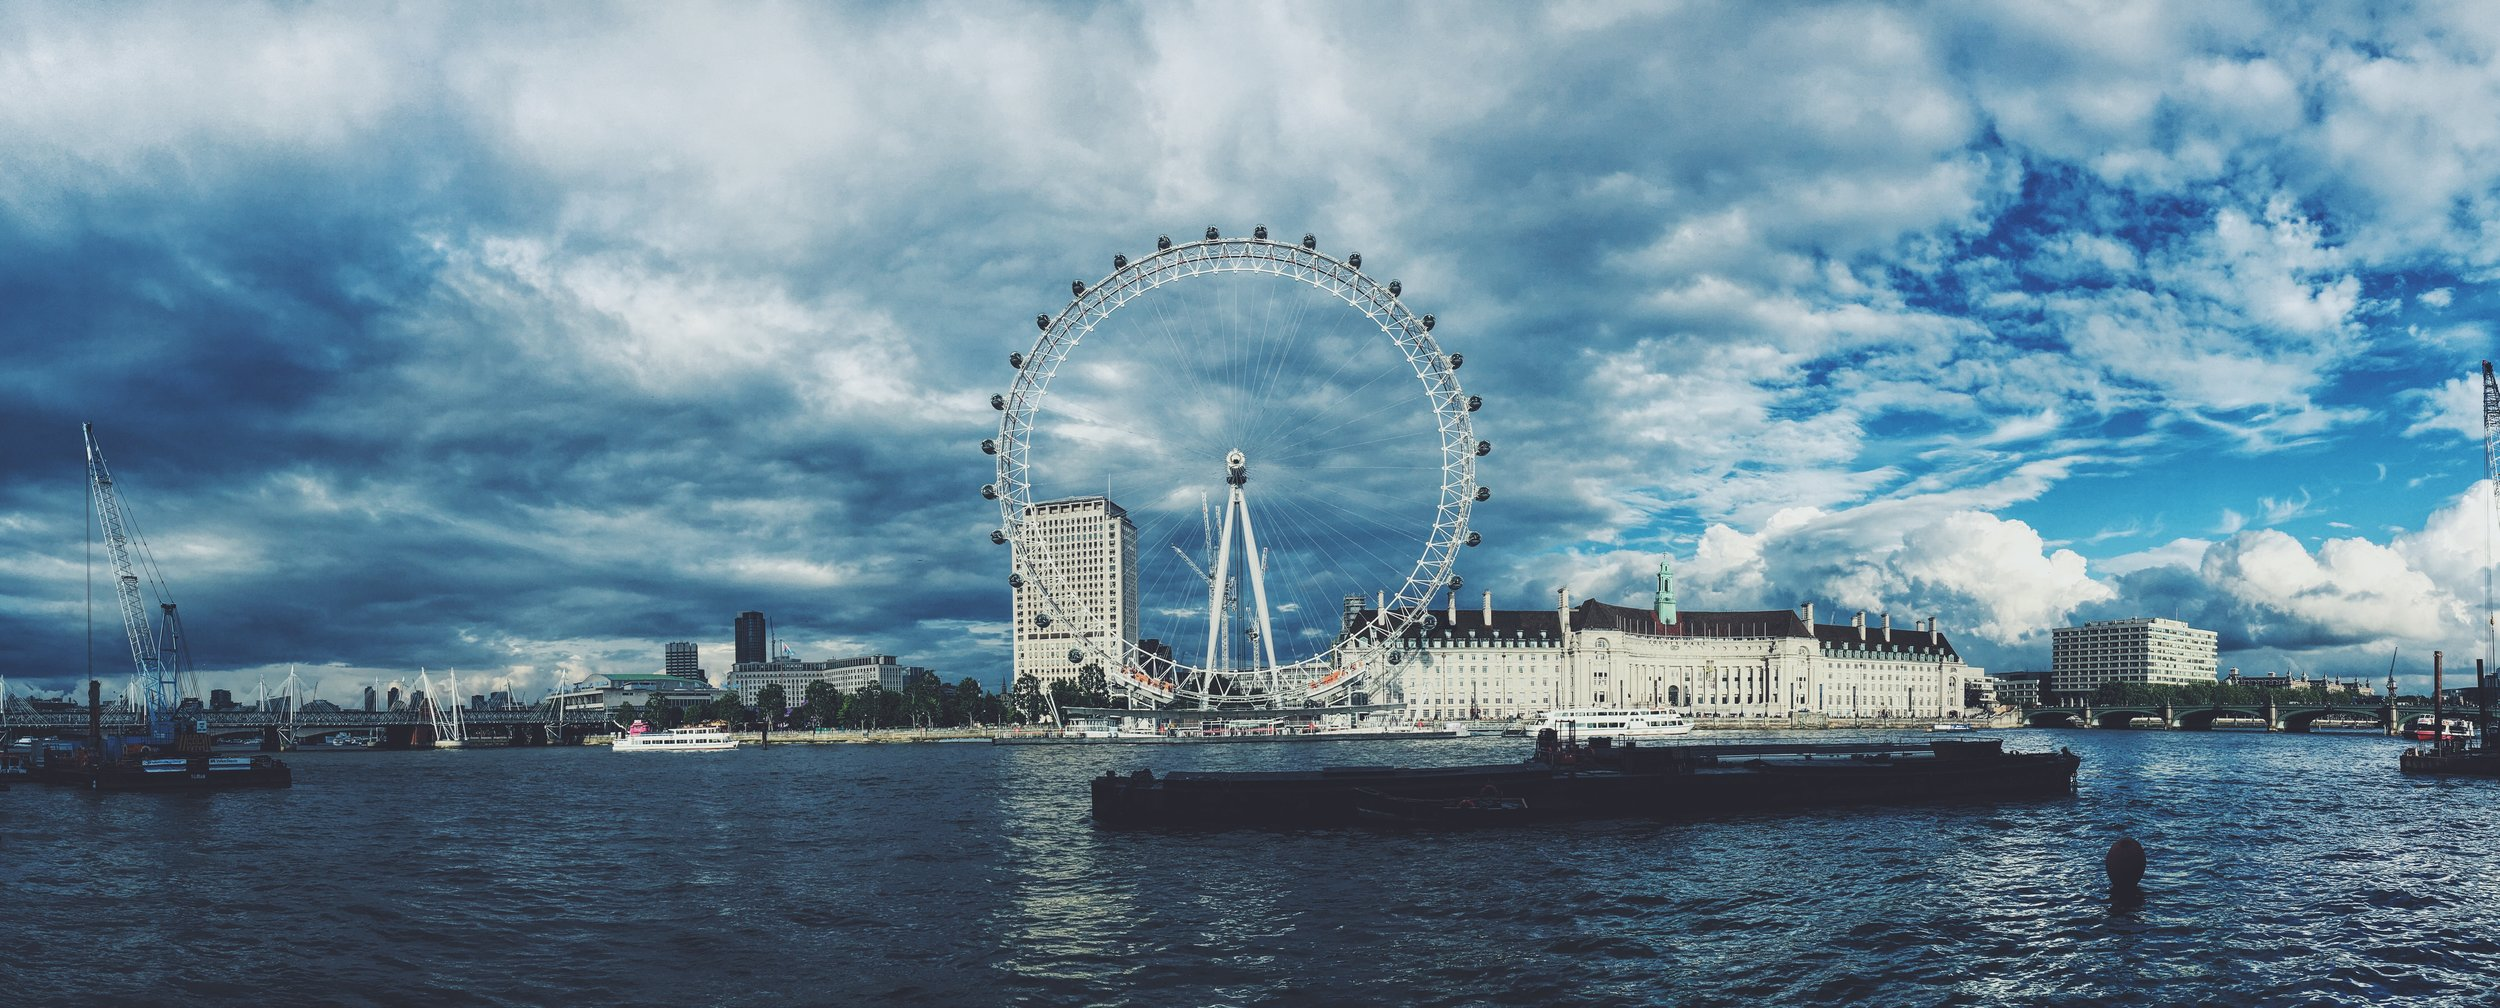 The London Eye is one of the best places to visit in London